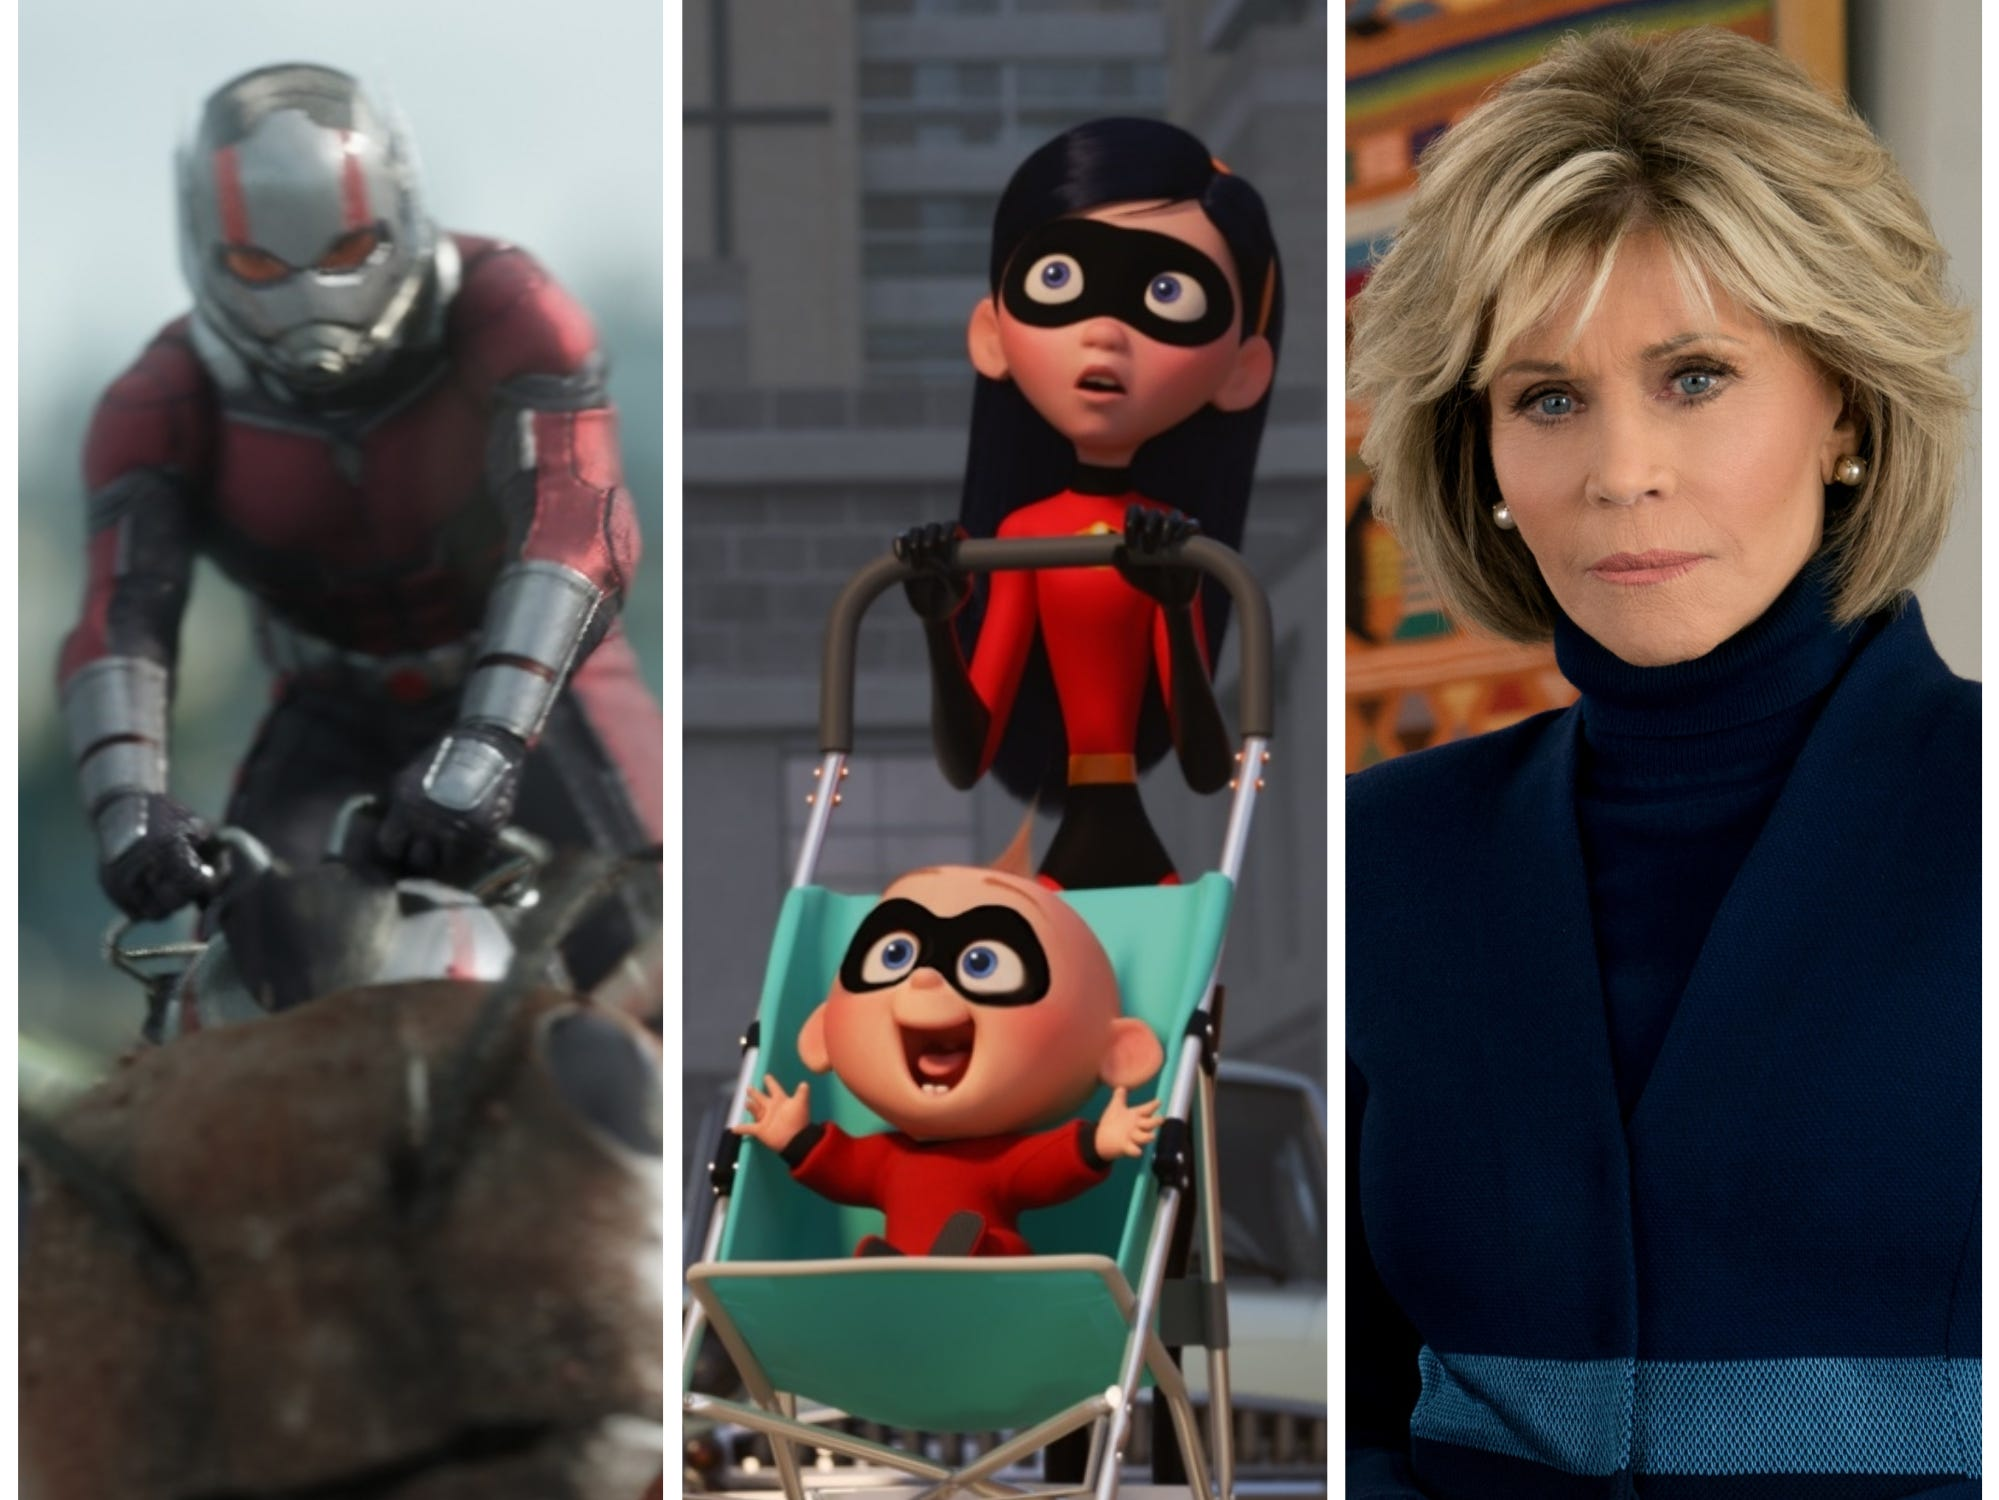 New on Netflix in January: 'Incredibles 2,' 'Carmen Sandiego' and more Marvel